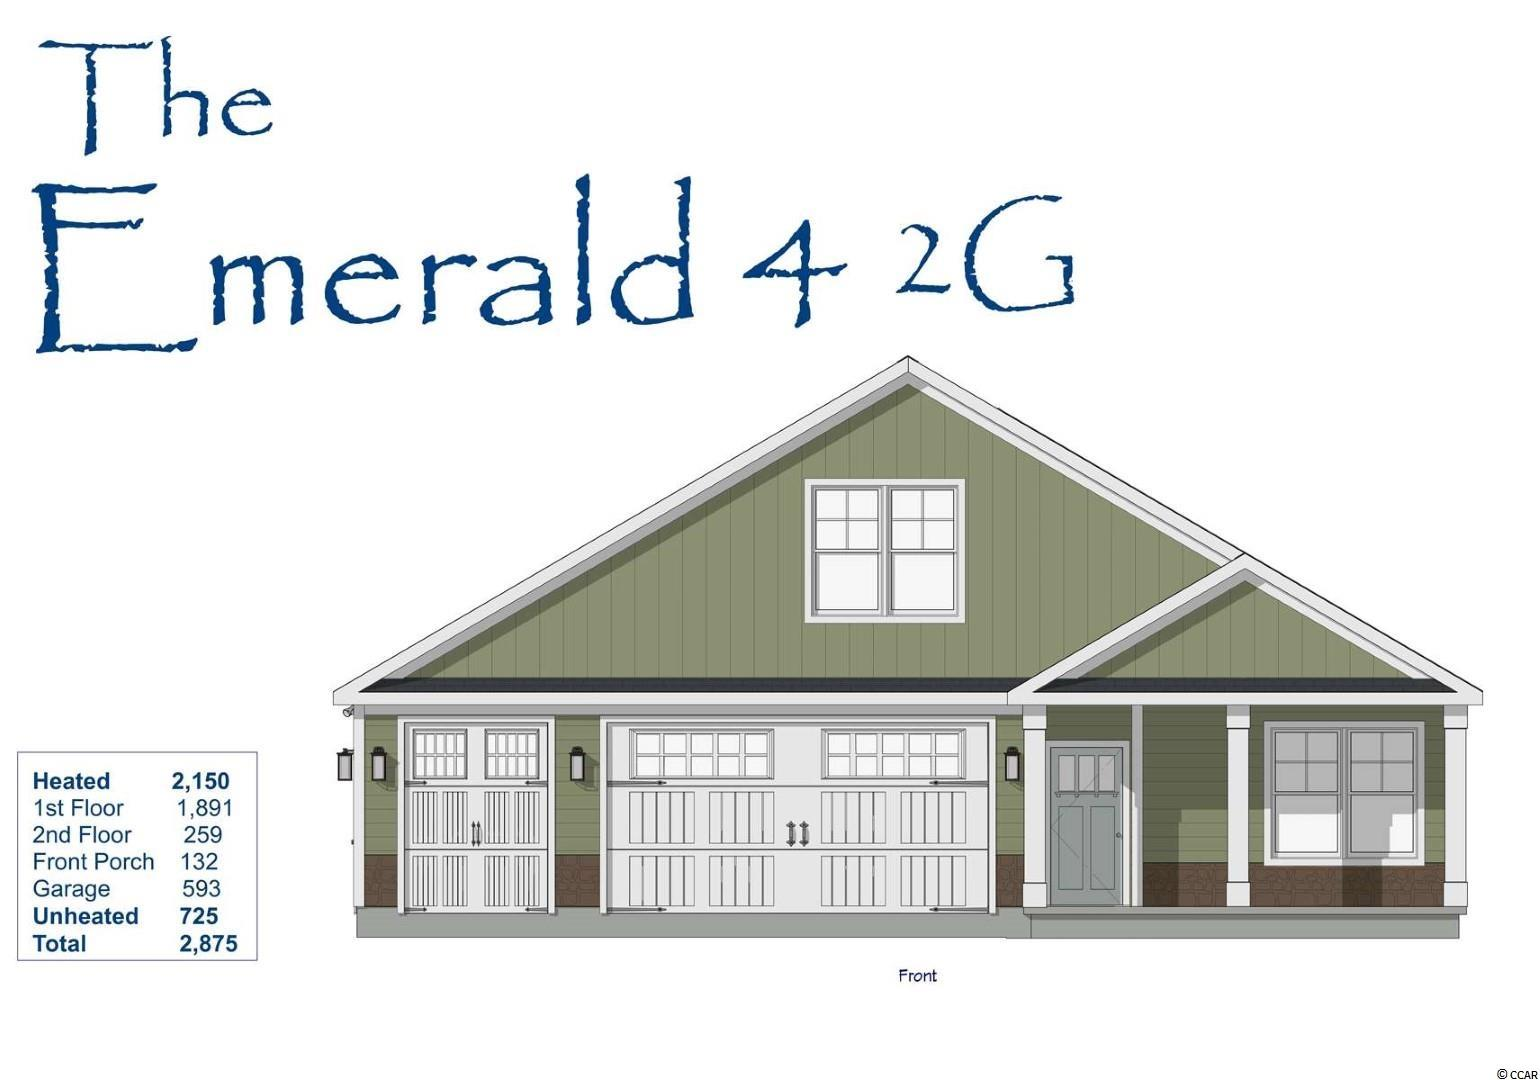 Our fantastic new Emerald 4 2G Model has so much to offer ~ This One & 1/2 story home features 3Br/2Ba and an office on first floor & 1 BR/bonus with full bath on the 2nd floor and a large 3 car garage! This open floor plan boasts a large living room, breakfast/dining area, kitchen with free standing gas convection range, over-the-range sensor microwave, energy star dishwasher, granite countertops, garbage disposal, pantry, laundry room & rear patio. Fantastic Master Suite with tray ceiling, 2 walk in closets & bathroom with walk in shower, water closet and his & her sinks. The 2nd floor boasts a large bedroom/bonus room with full bath. Energy savings features include Low E windows, 14 Sear HVAC, Digital WiFi Programmable Thermostats, Tankless Gas Hot Water Heater & 200 Amp electrical service, security system with keyless entry.  Too much to mention so come see for yourself! From the time you step onto the quaint from porch & open the front door you'll see the quality of construction. 9' flat ceilings, wide plank restoration flooring, luxurious carpet in bedrooms.  Additionally, Robber's Roost at North Myrtle Beach is a natural gas community east of Hwy 17 with a community pool coming for the 2021 swimming season & is located within walking, bicycle or golf cart distance to Tilghman Beach, the beautiful Atlantic Ocean w/ 60 miles of white sandy beaches and is close to Coastal North Town Center (shopping, dining, beauty, pets), Shag dance capital Main St., golf, boating/fishing in the ICW, entertainment and all the amenities of living in Coastal South Carolina. Whether a primary residence or your vacation get-a-way, Don't Miss ~ come live the dream!  (*Many new plans to choose from!)